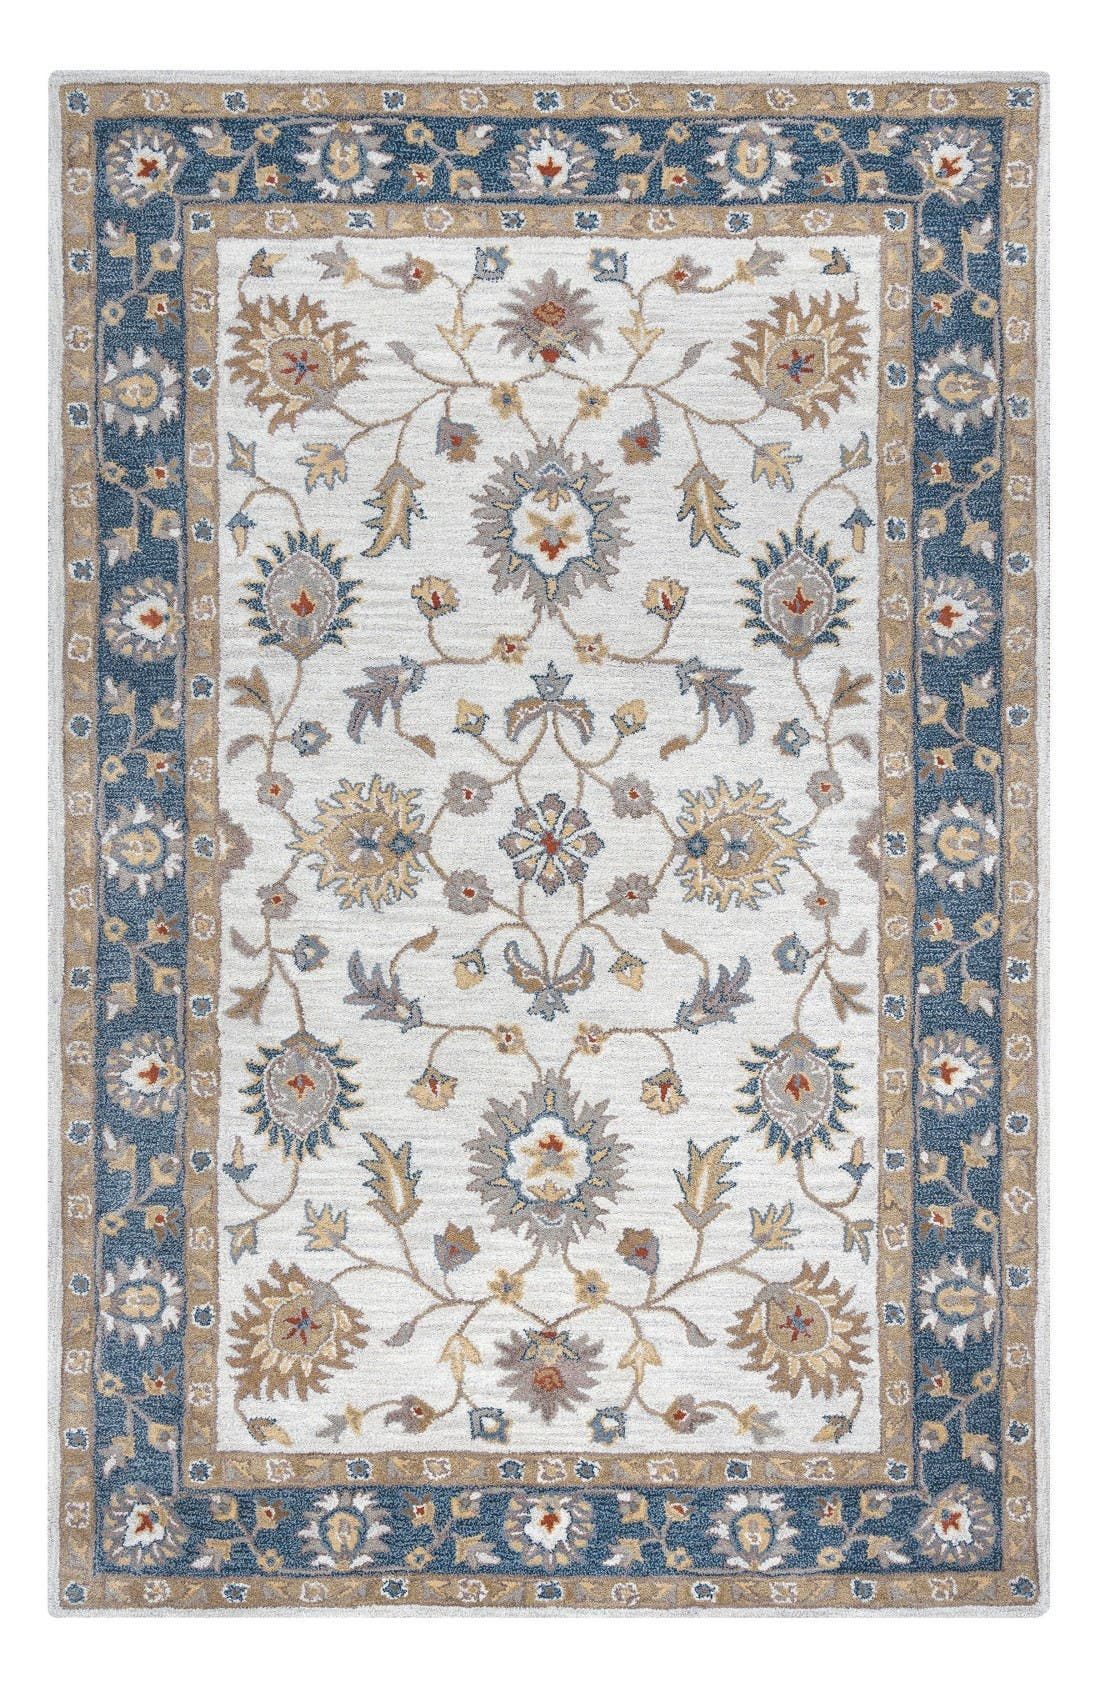 'Valintino Border' Hand Tufted Wool Area Rug,                         Main,                         color, Taupe